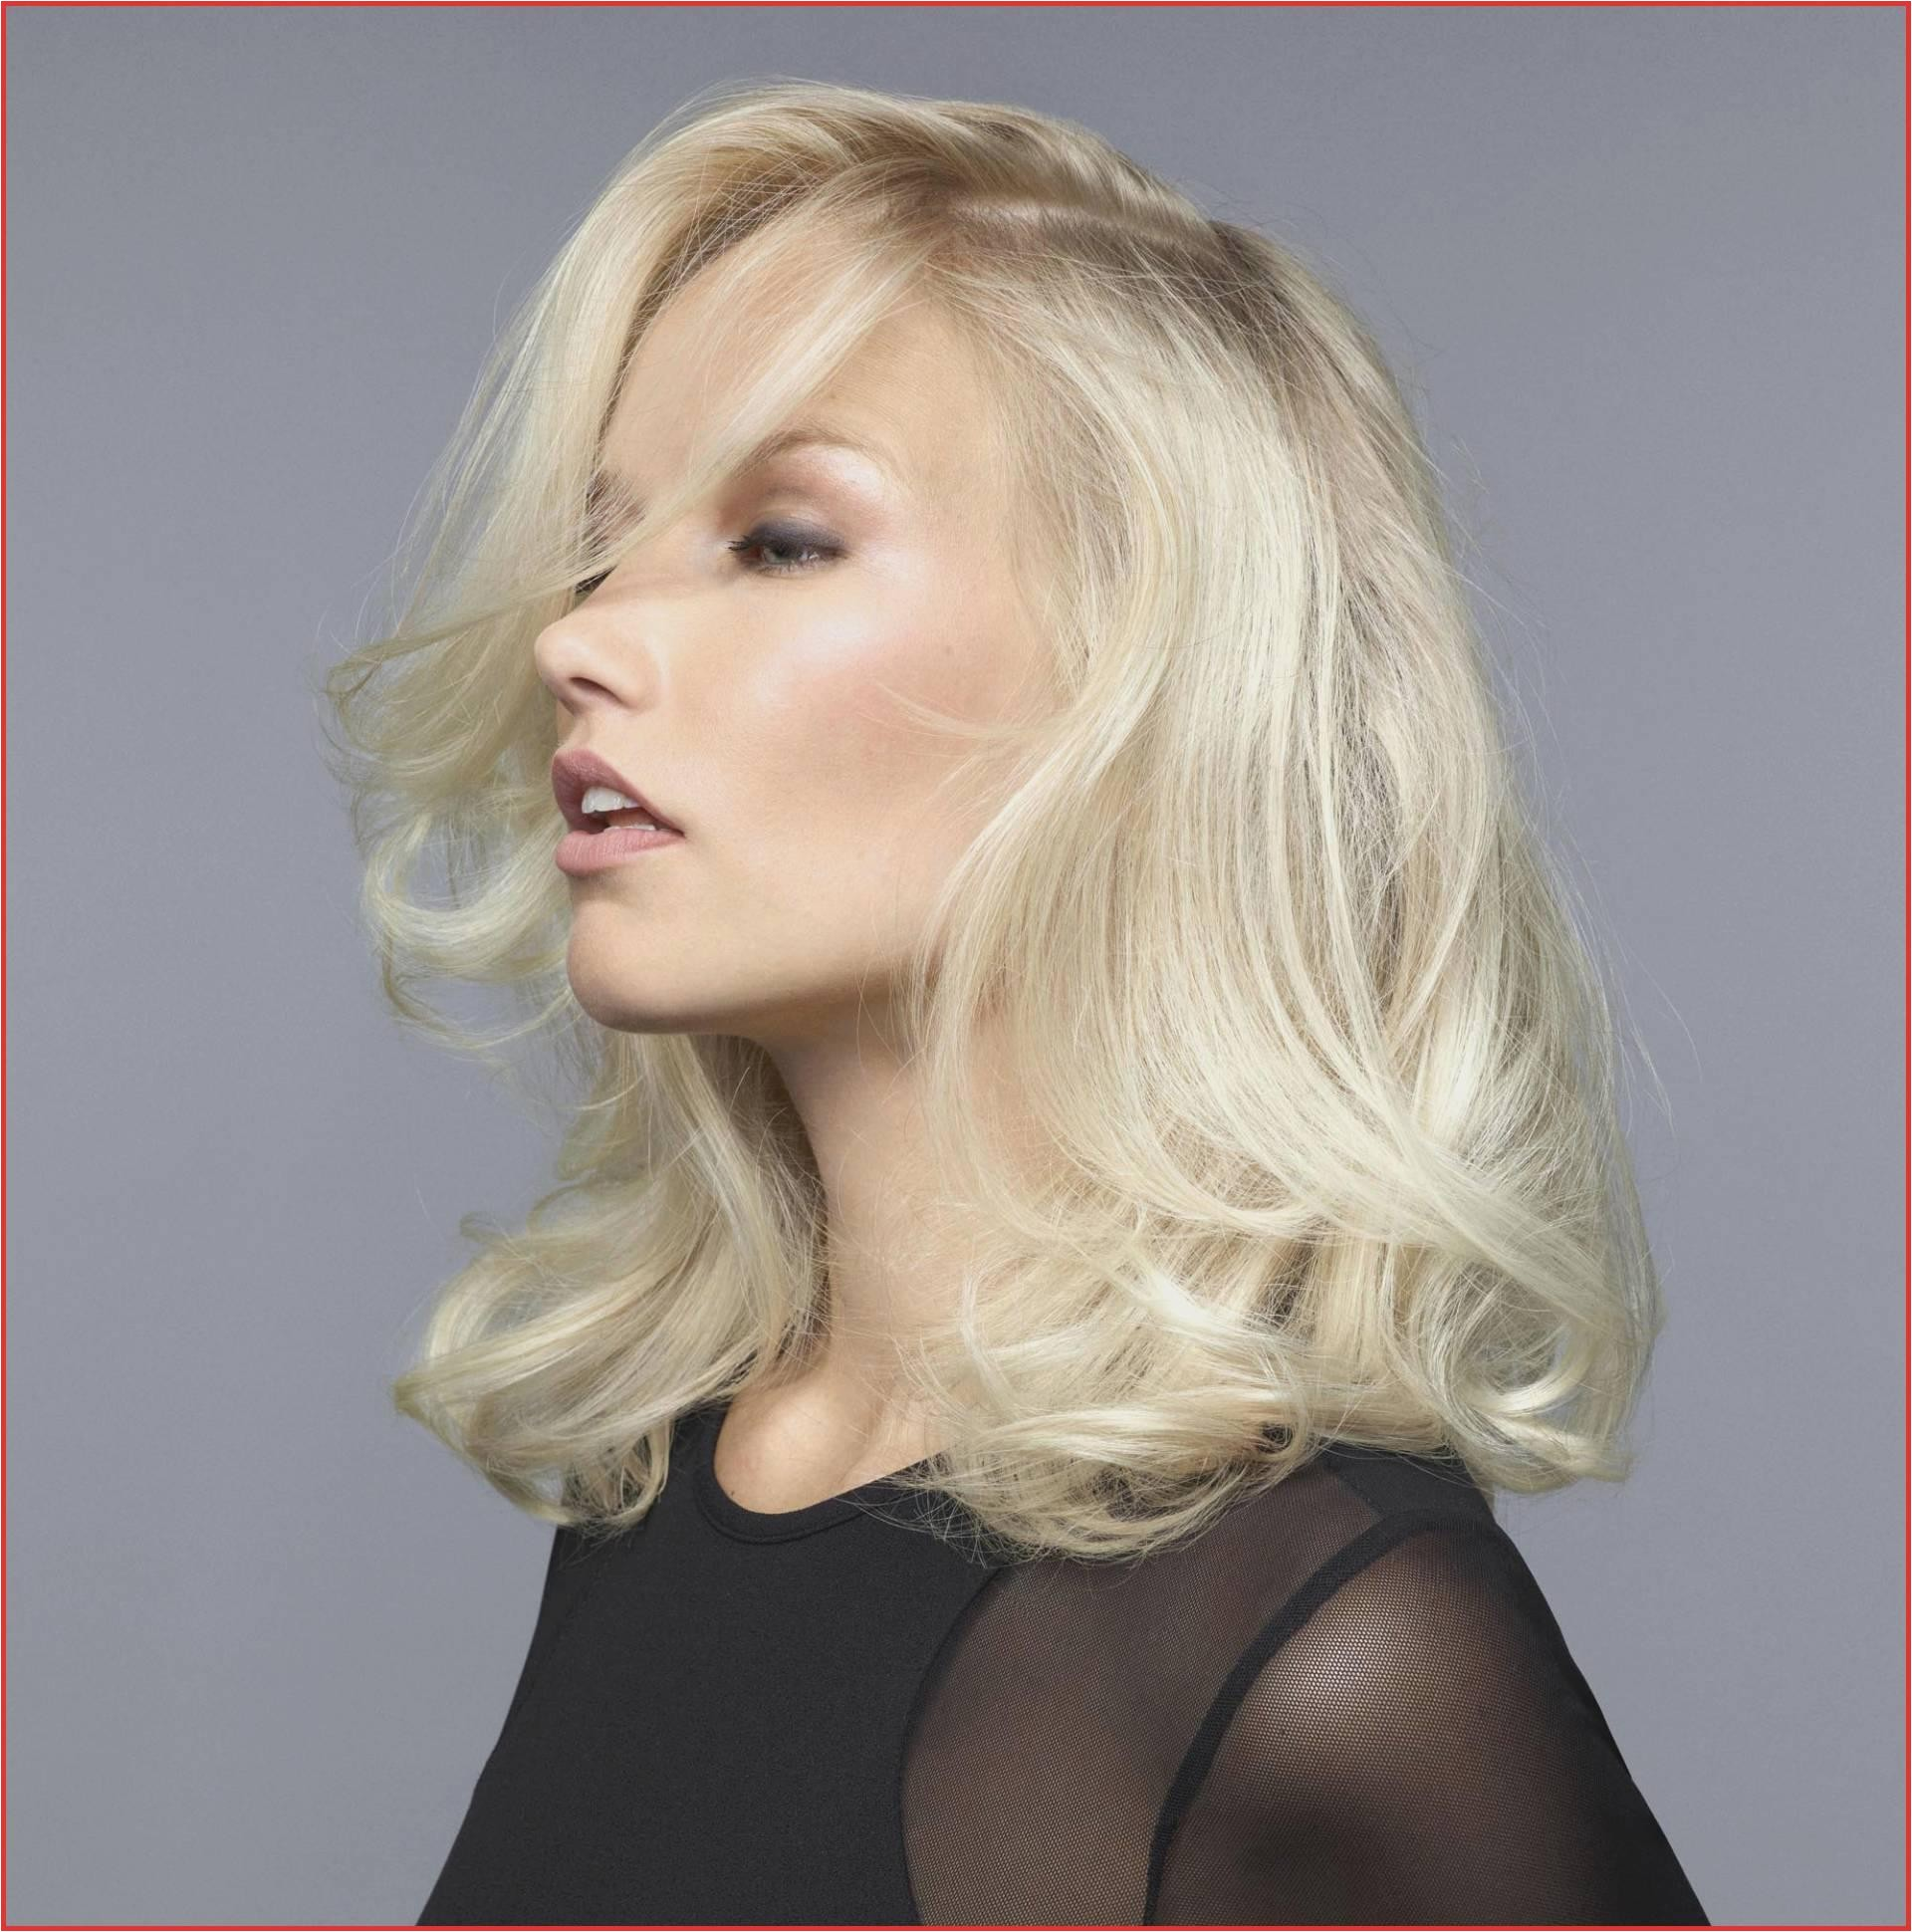 Newest Womens Hairstyles 1920s Womens Hairstyles Luxury Haircut for Girls Girl Getting